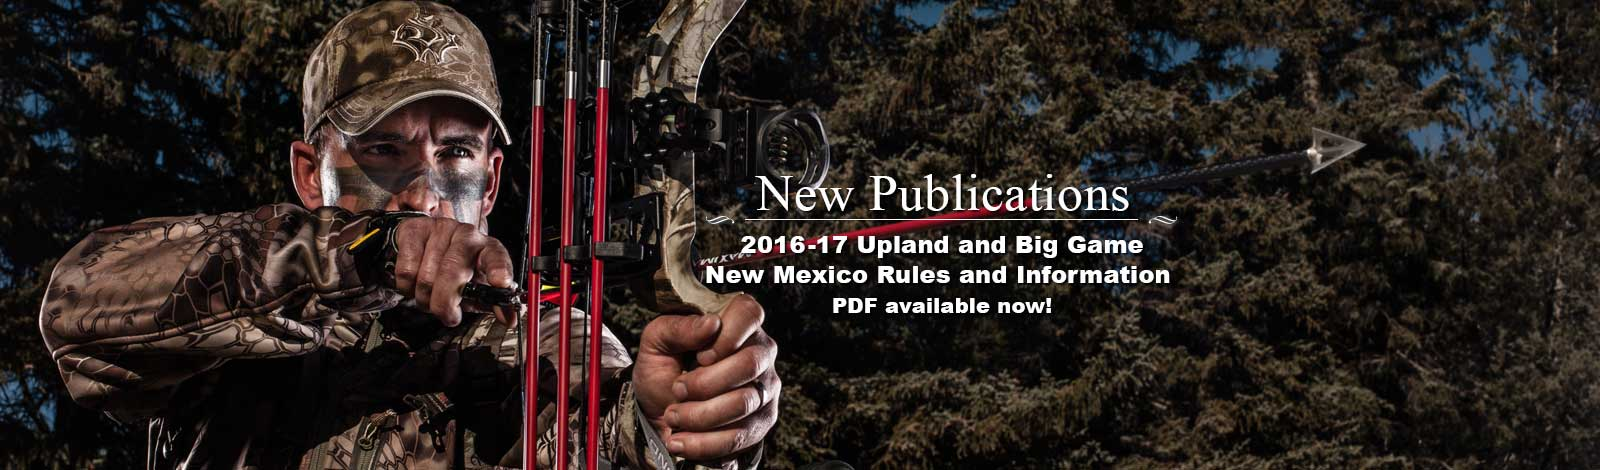 backgrounds-slider-1600×470-New-Mexico-2016_17-Upland-and-Big-Game-Rules-Info-Publication